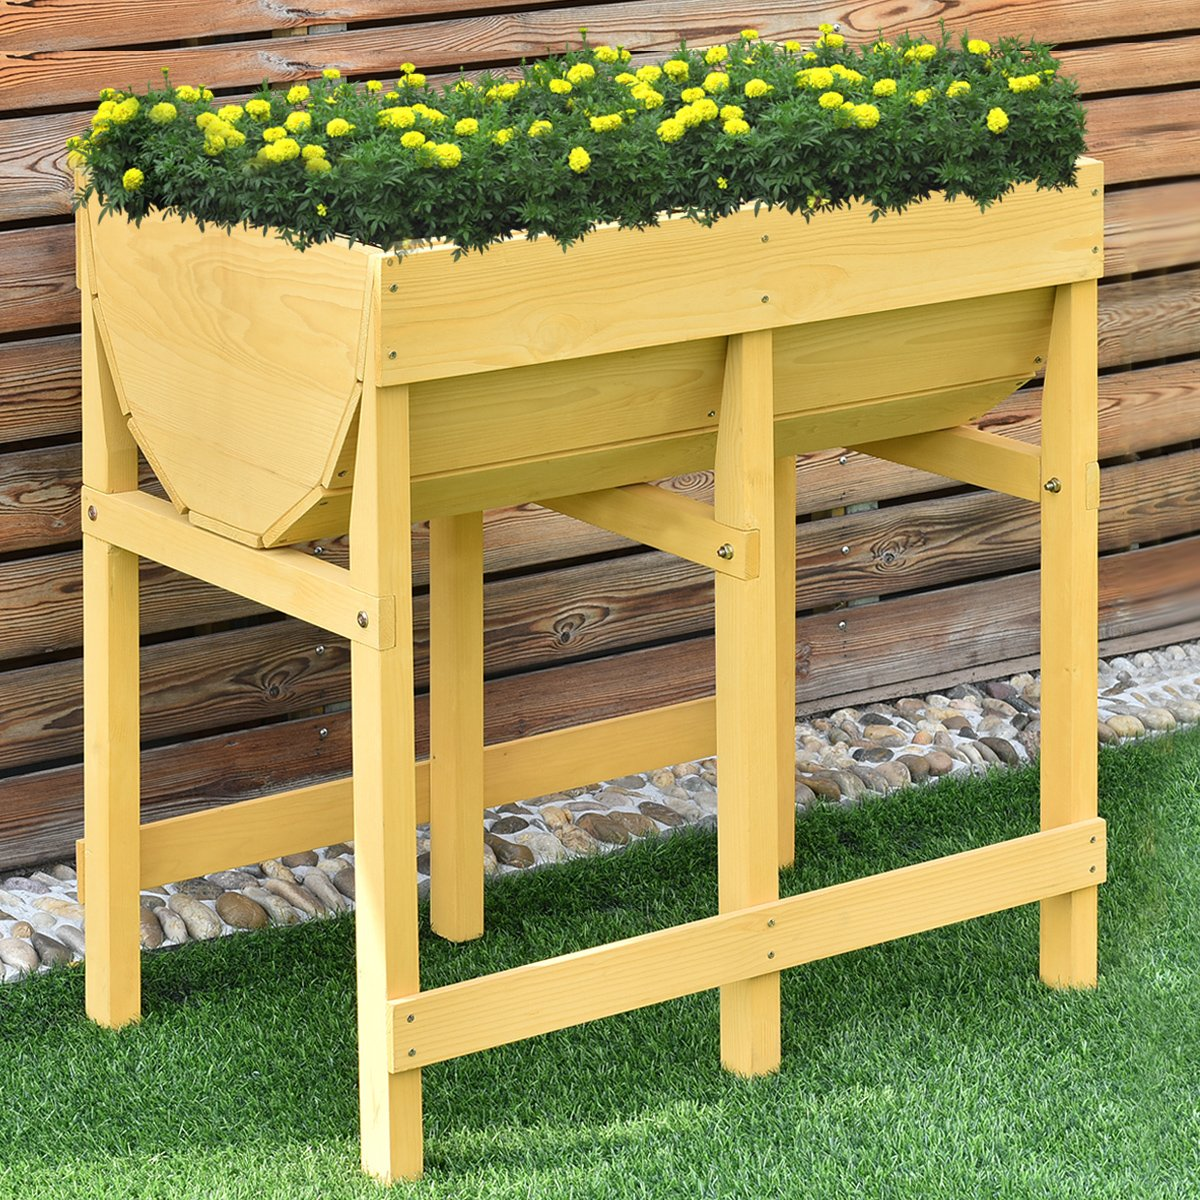 Tawny V Planter Giantex Raised Wooden V Planter Elevated Vegetable Flower Bed Free Standing Planting Container with Black Liner